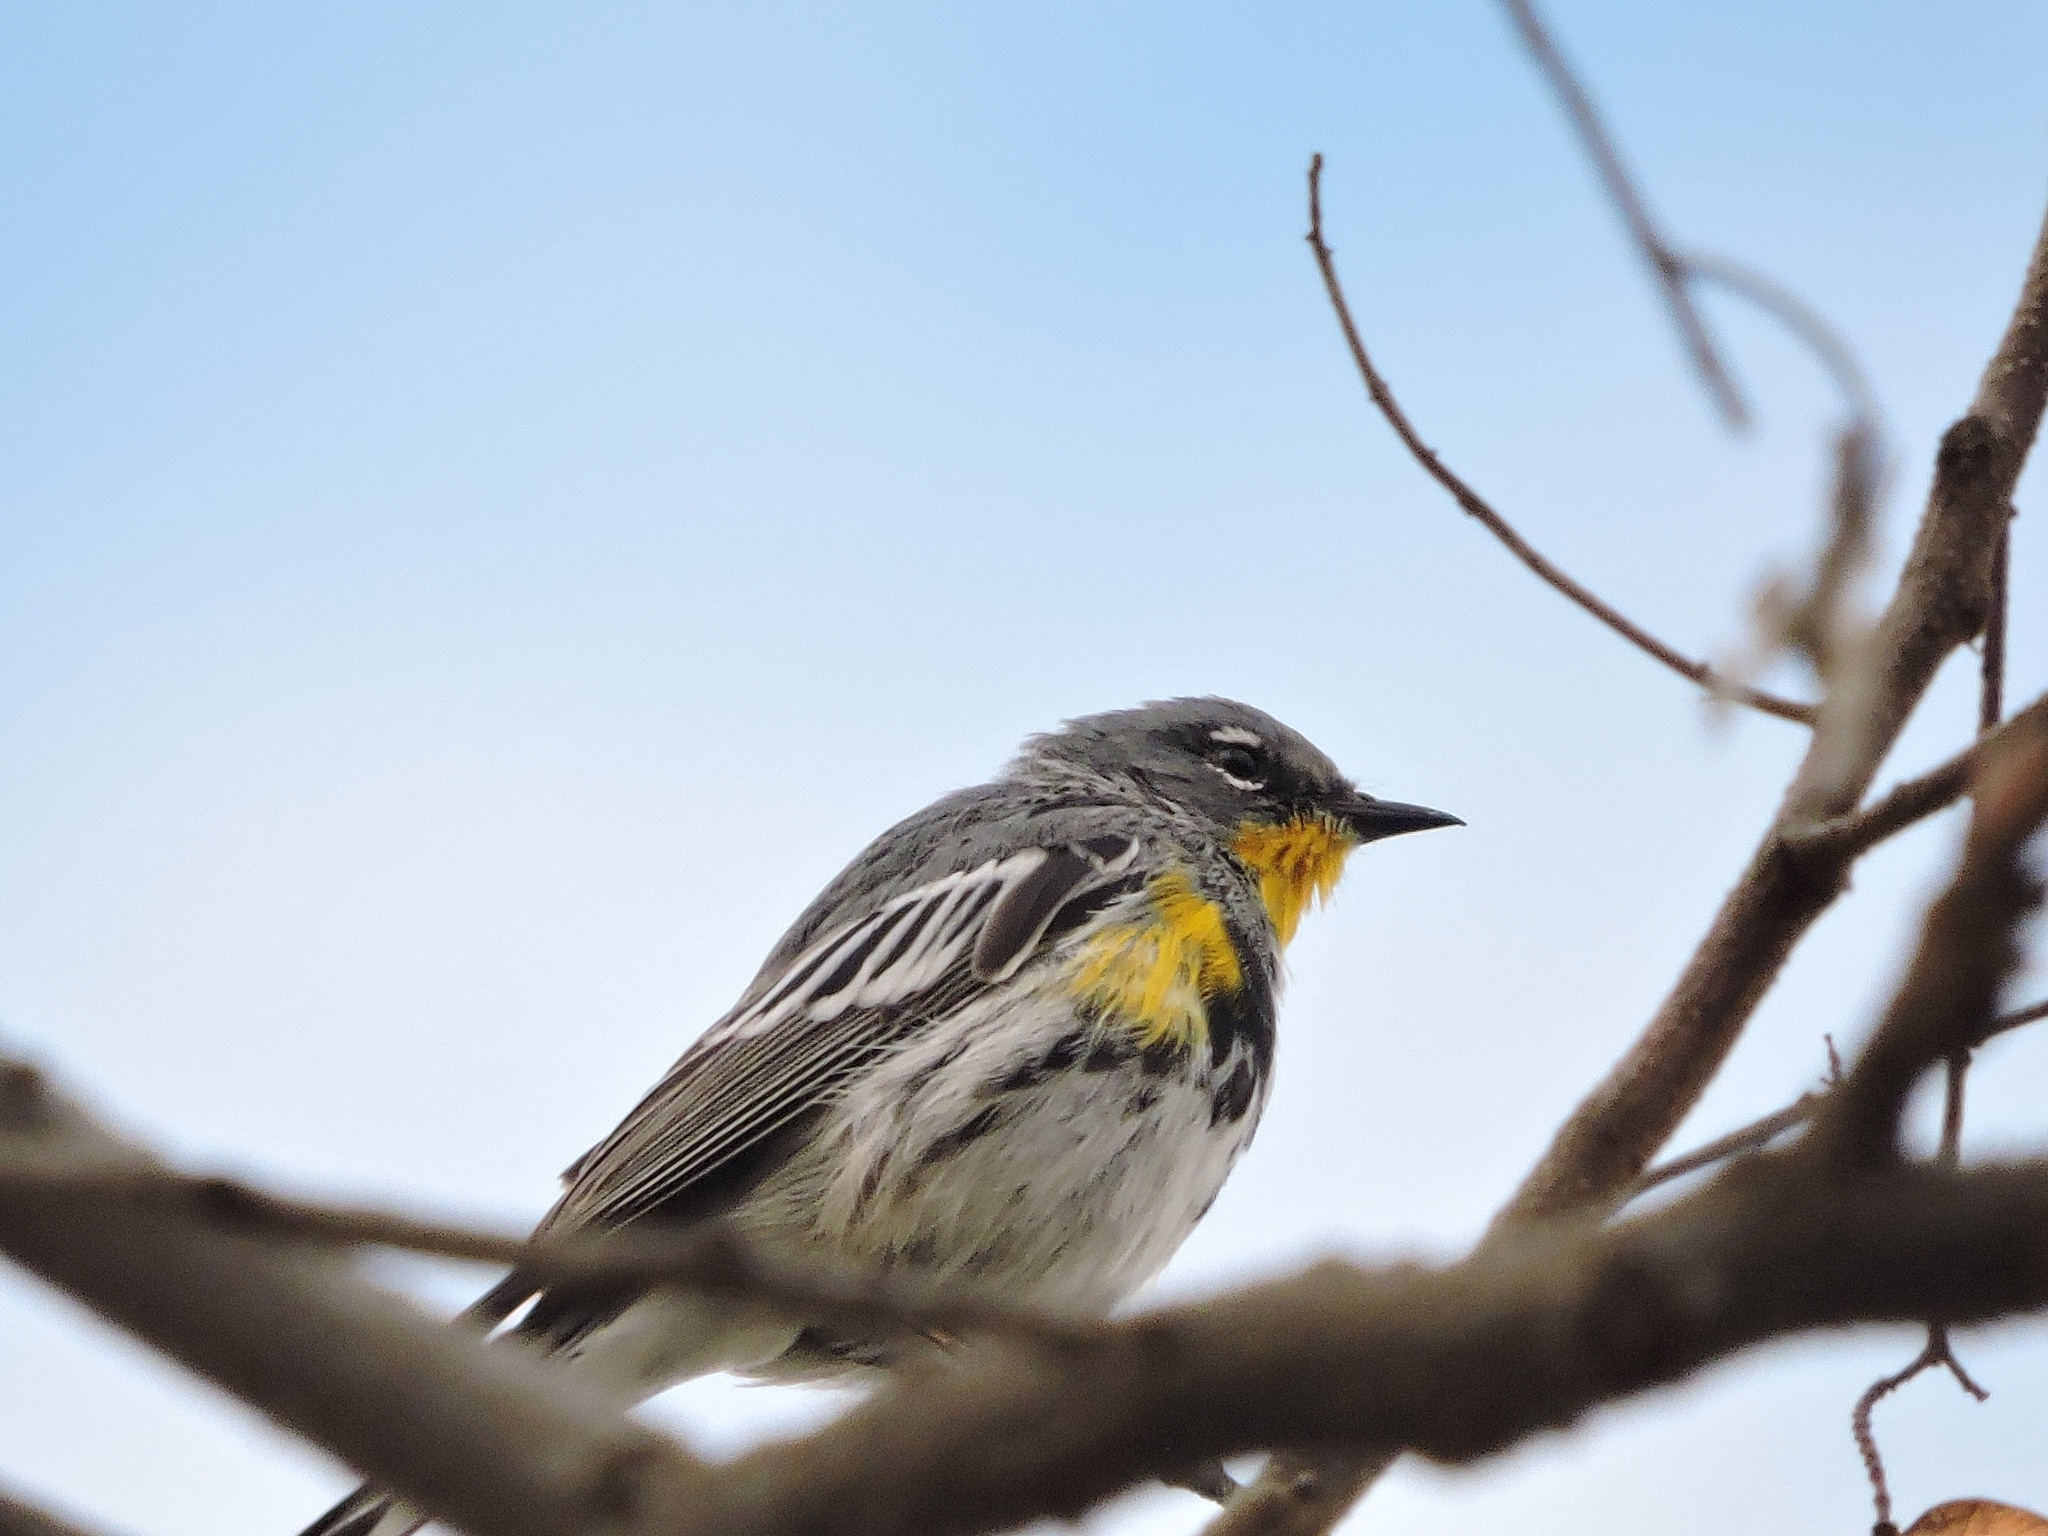 Warbler on a Winter Day by ralph.s.carlson